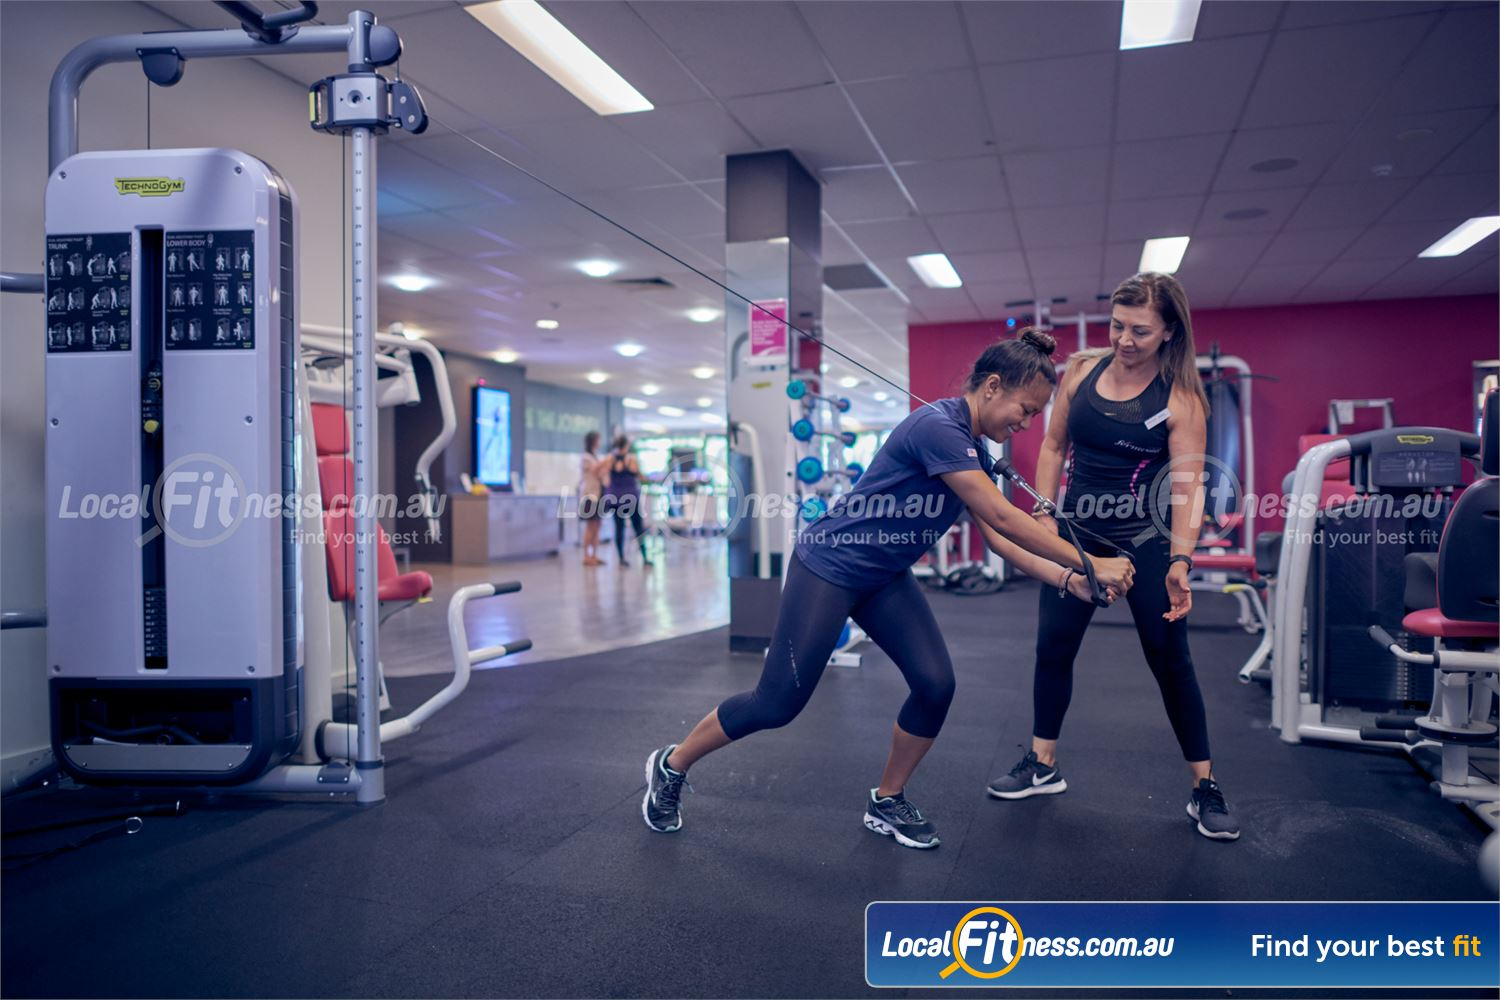 Fernwood Fitness Near St Kilda East Our St Kilda personal trainers can help you with your strength goals.